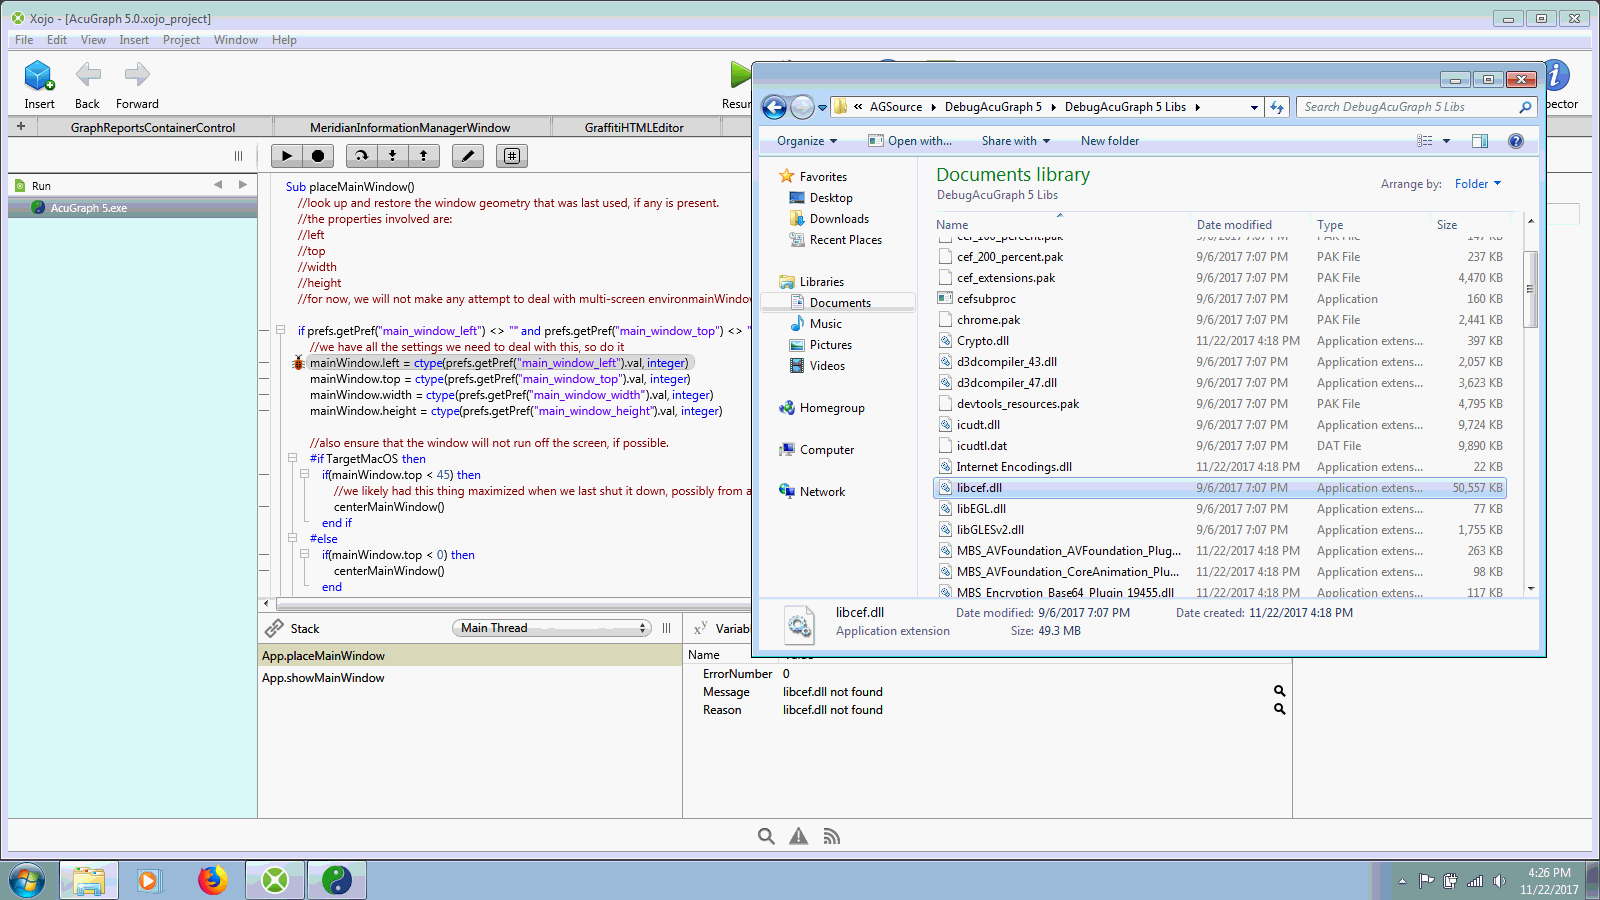 libcef dll not found exception with HTMLViewer - Xojo Forum